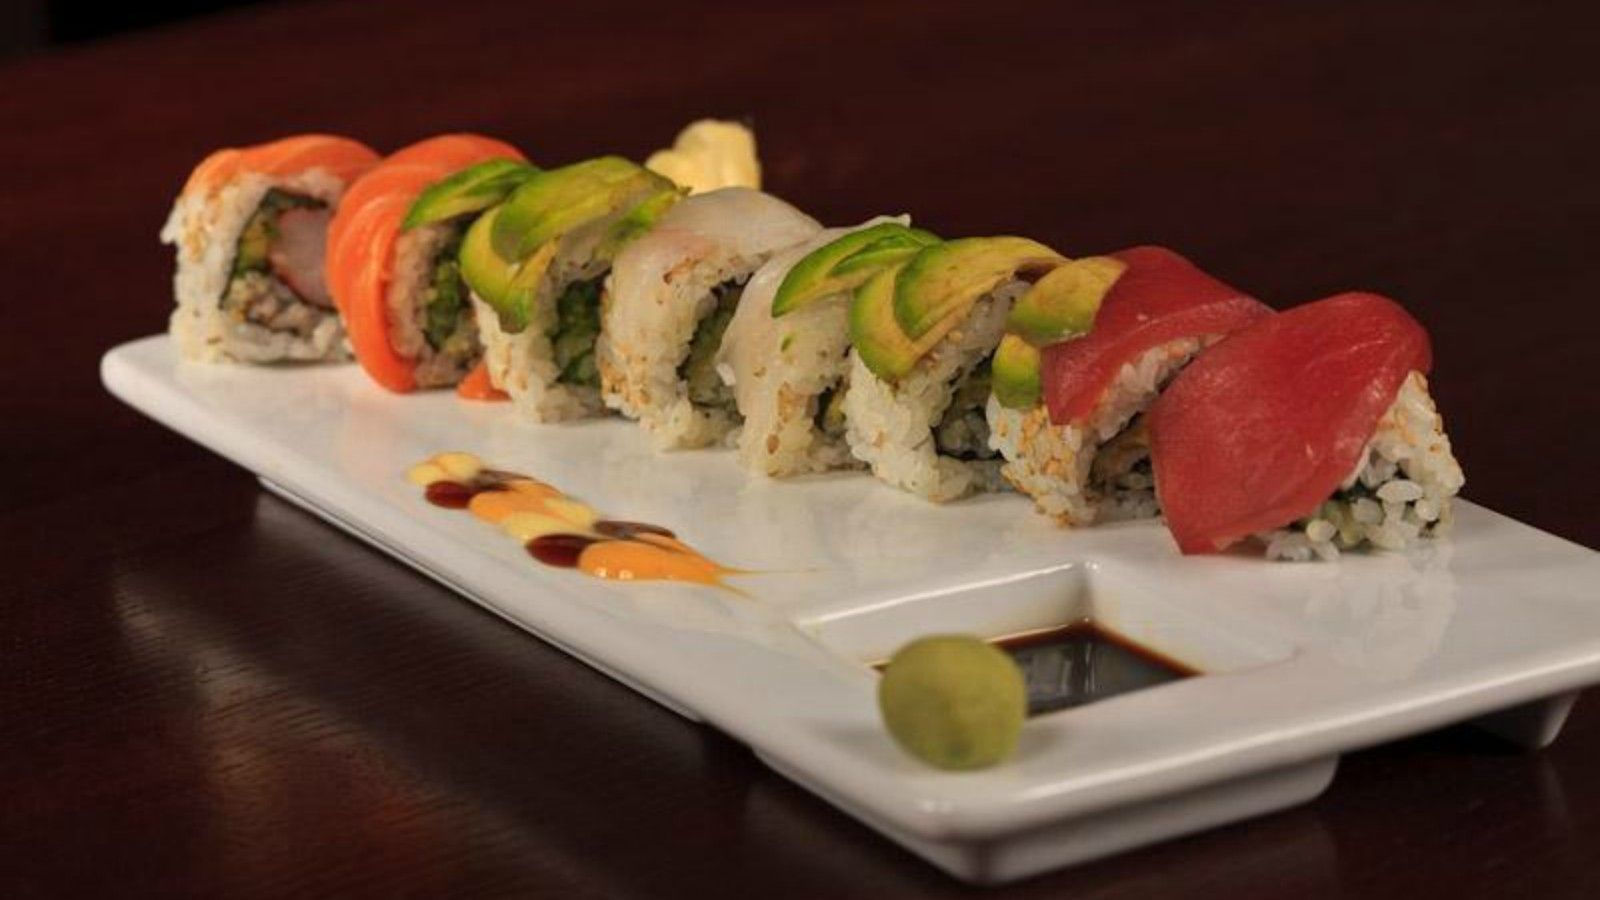 Morristown Restaurants - Sushi Rainbow Roll